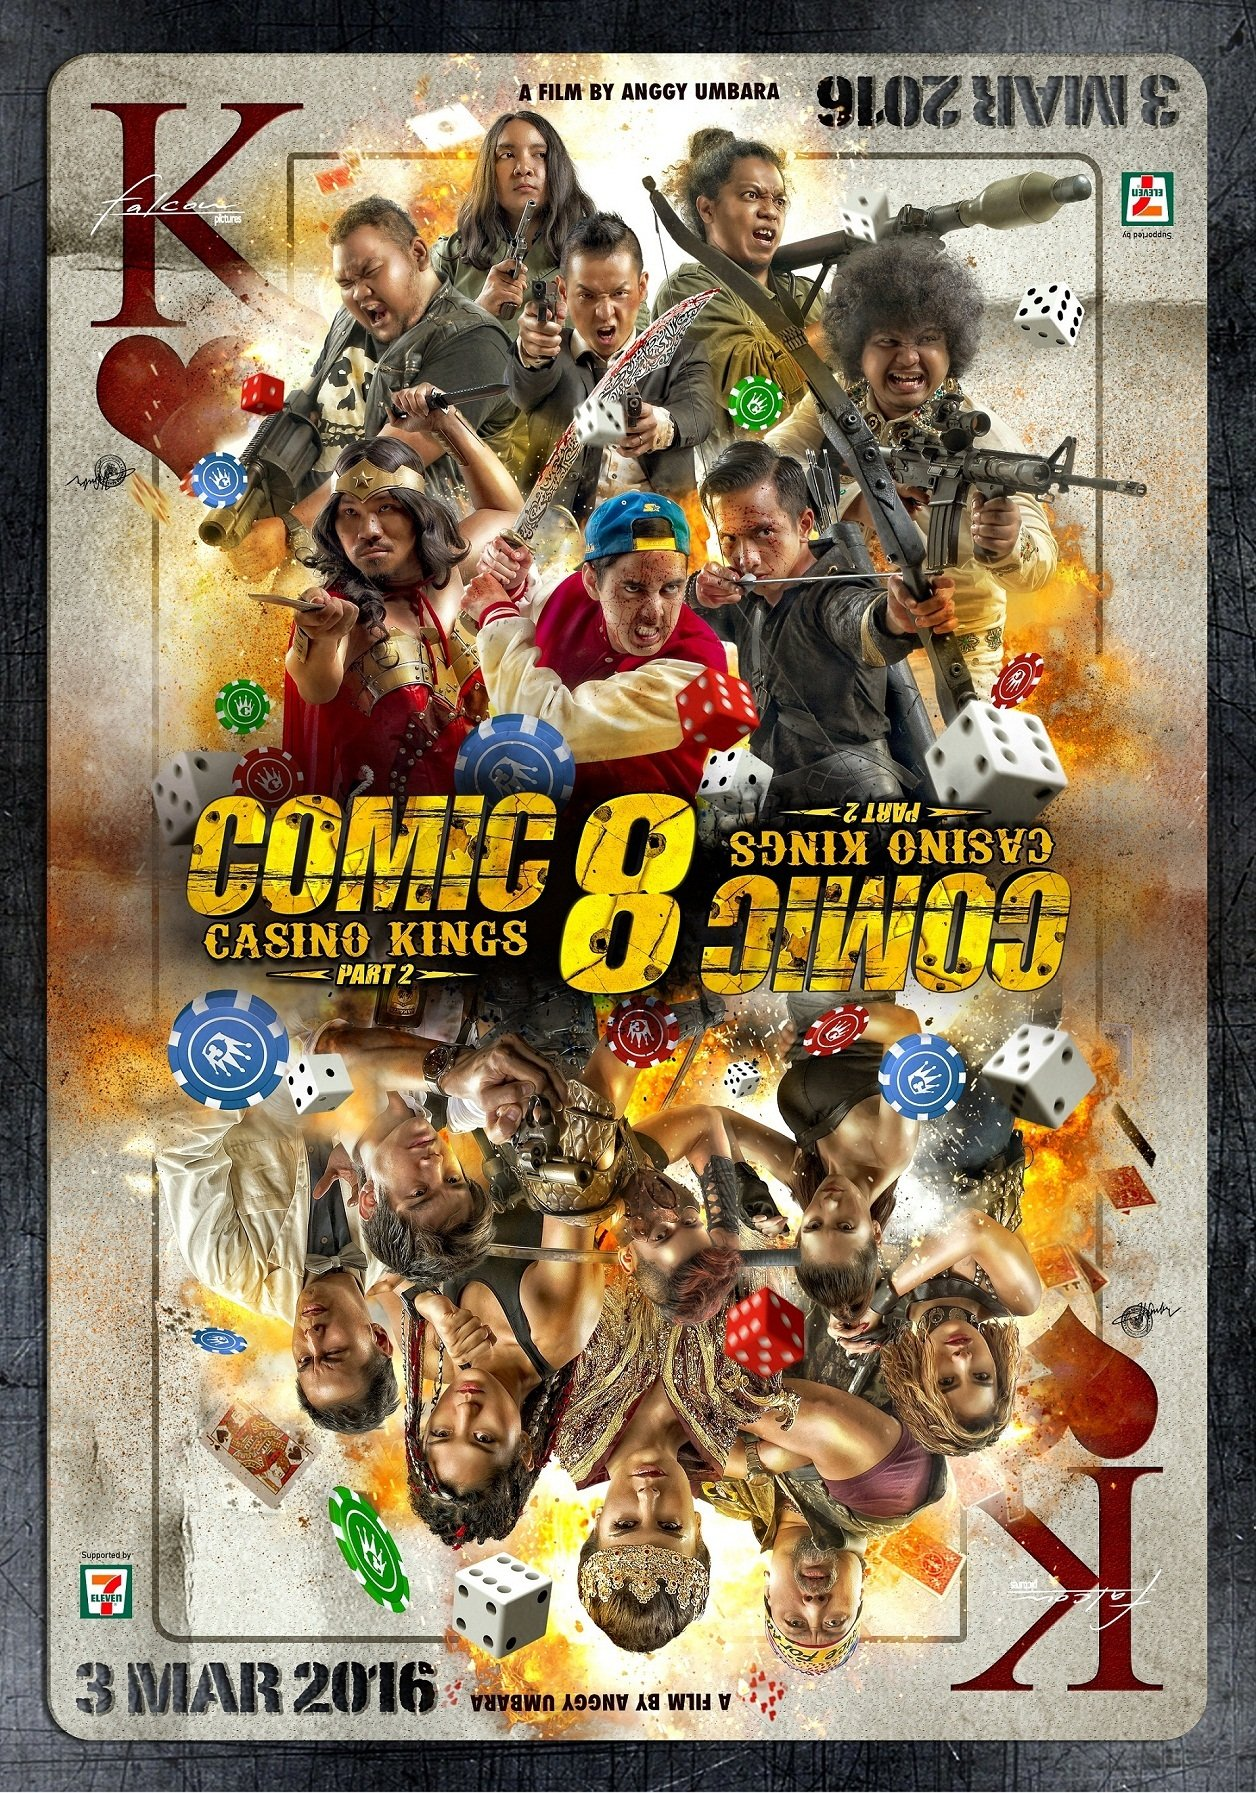 Film casino kings comic 8 euro casino free bonus